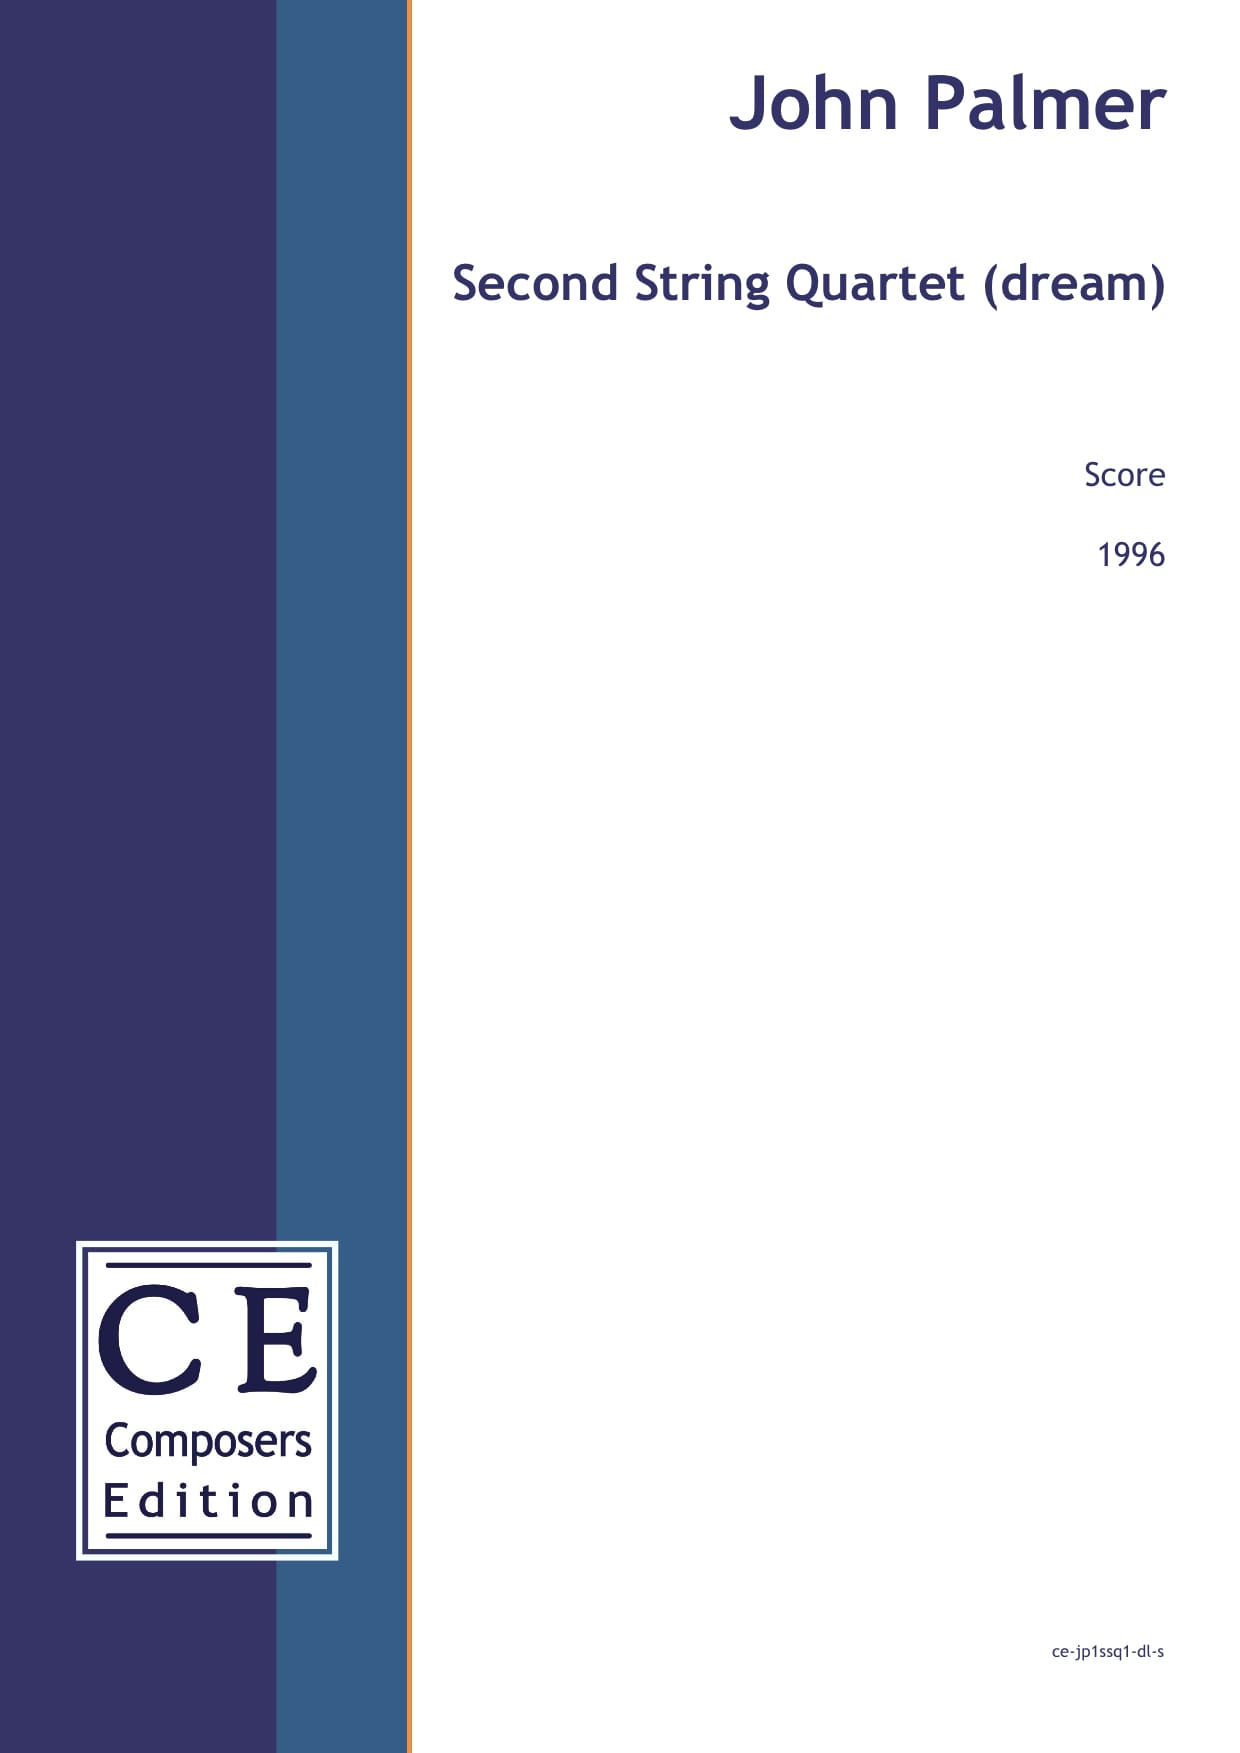 John Palmer: Second String Quartet for string quartet